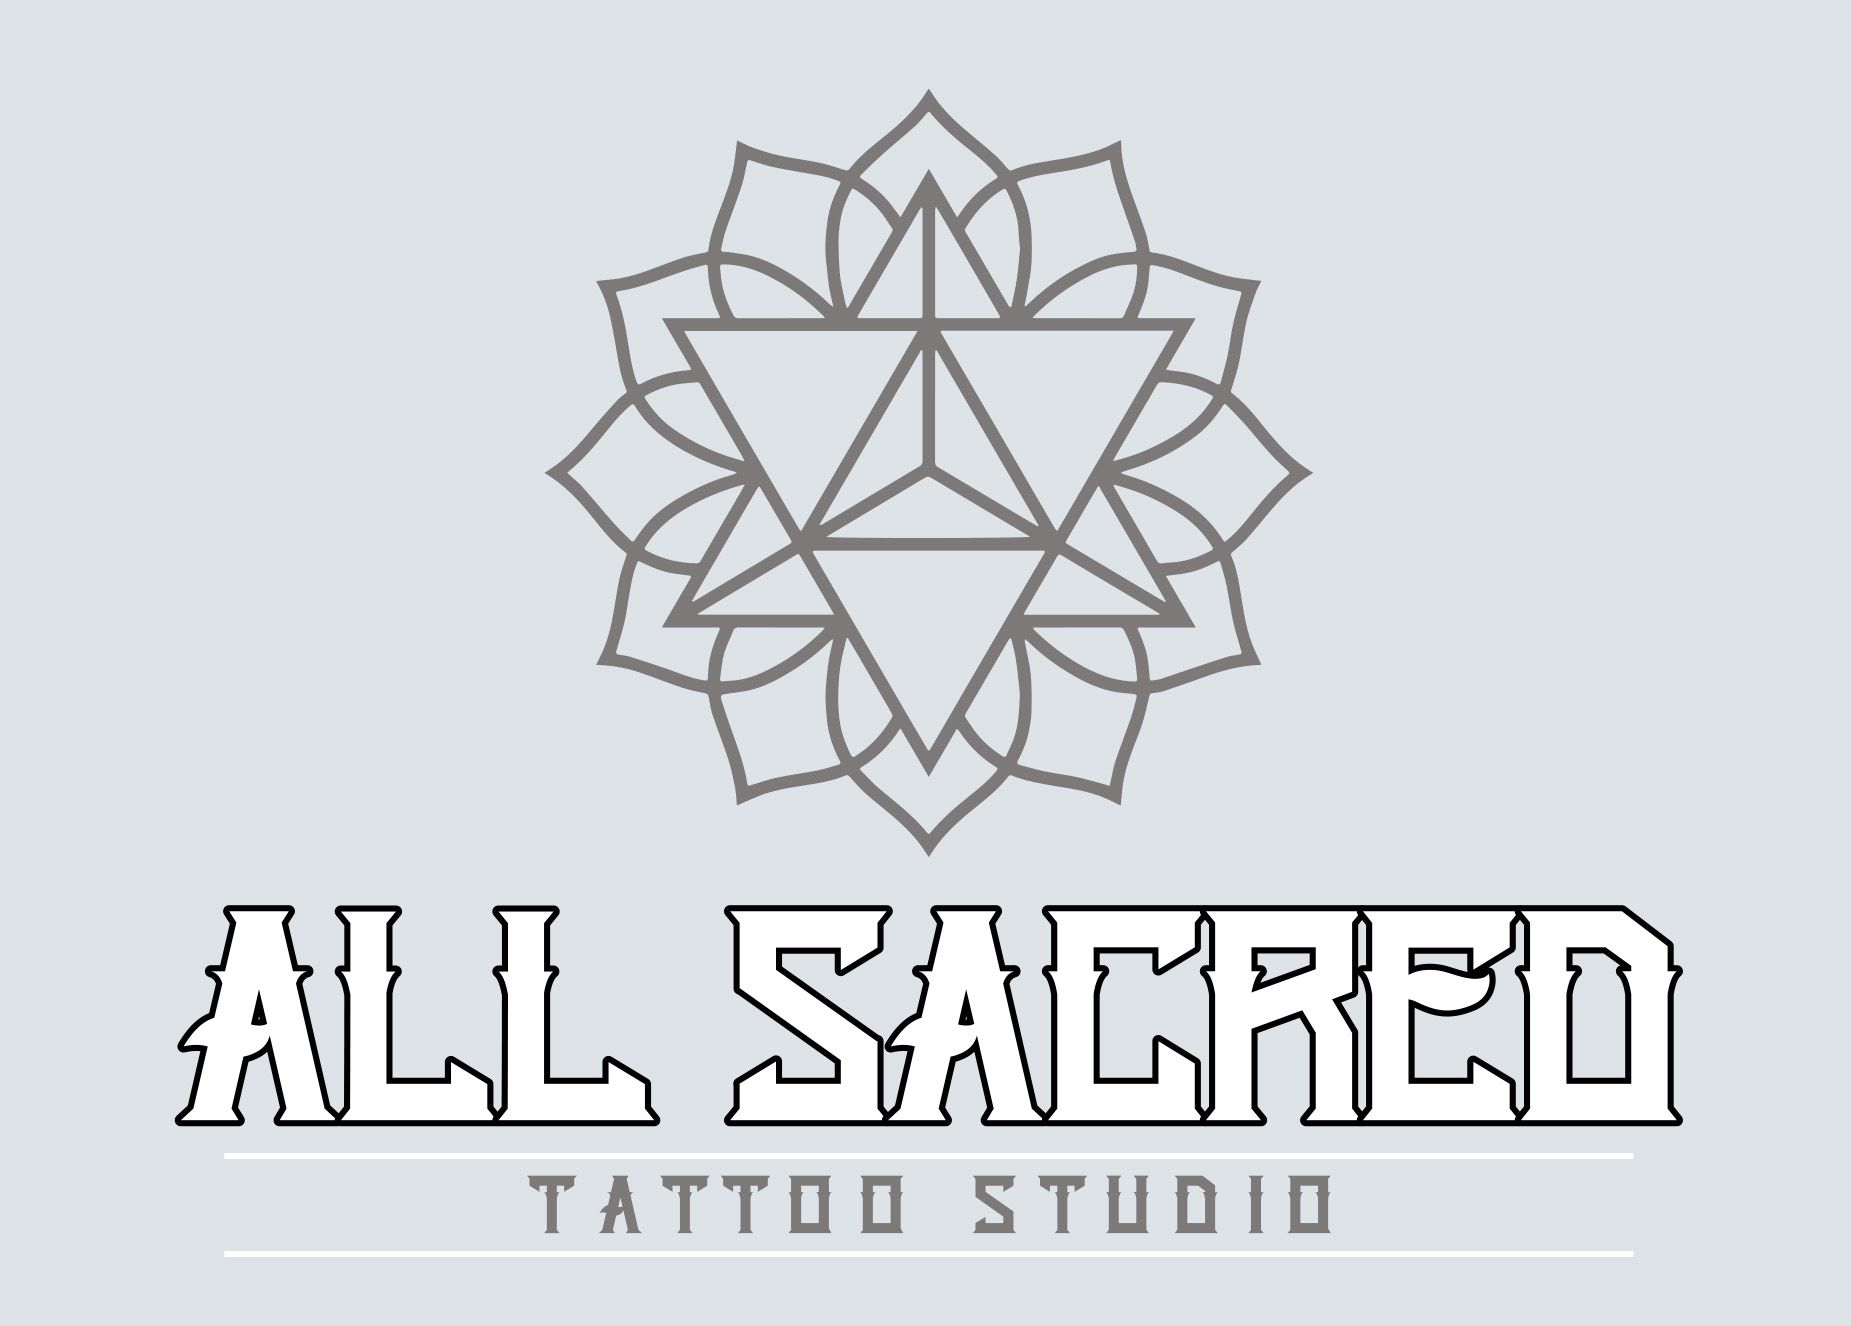 Mens Tattoo Shop Denver Co: Tattoo Studio, Tattoos, Blackwork